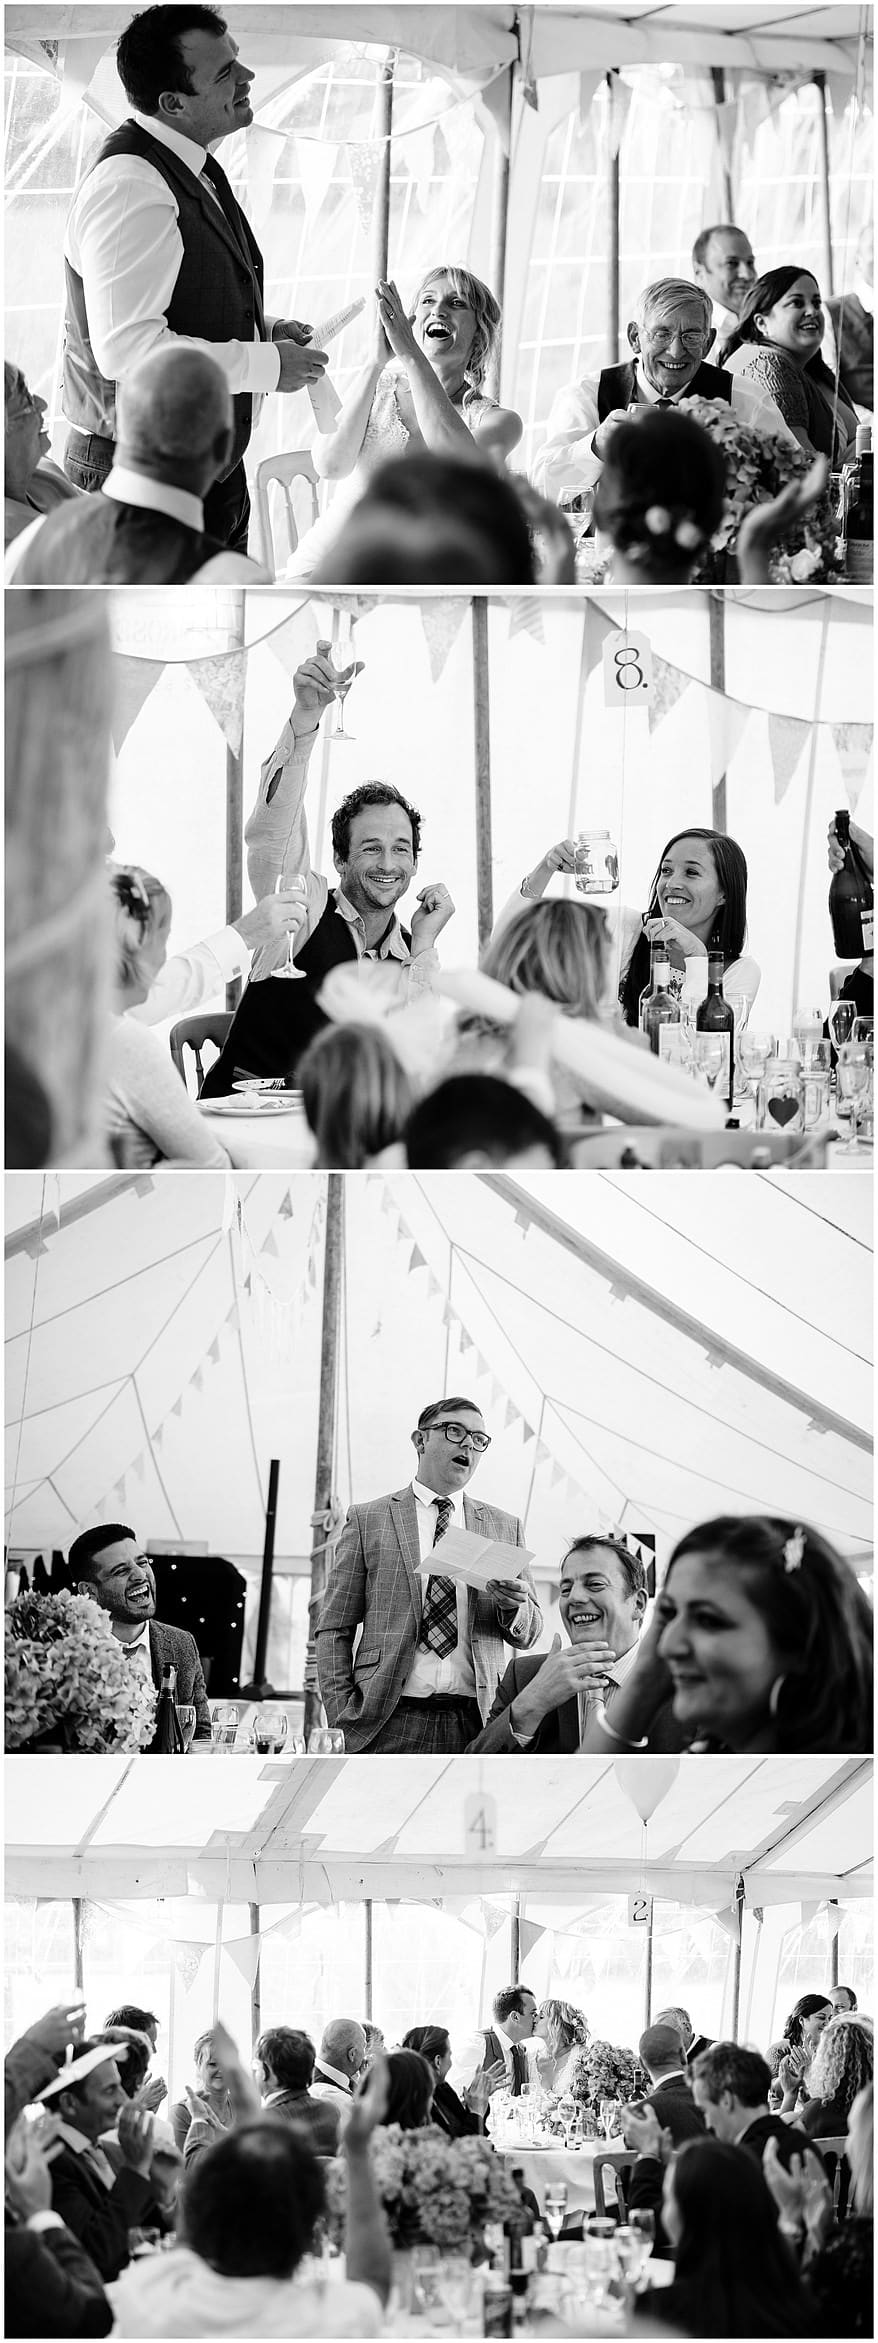 groom speeches at a village fete themed wedding